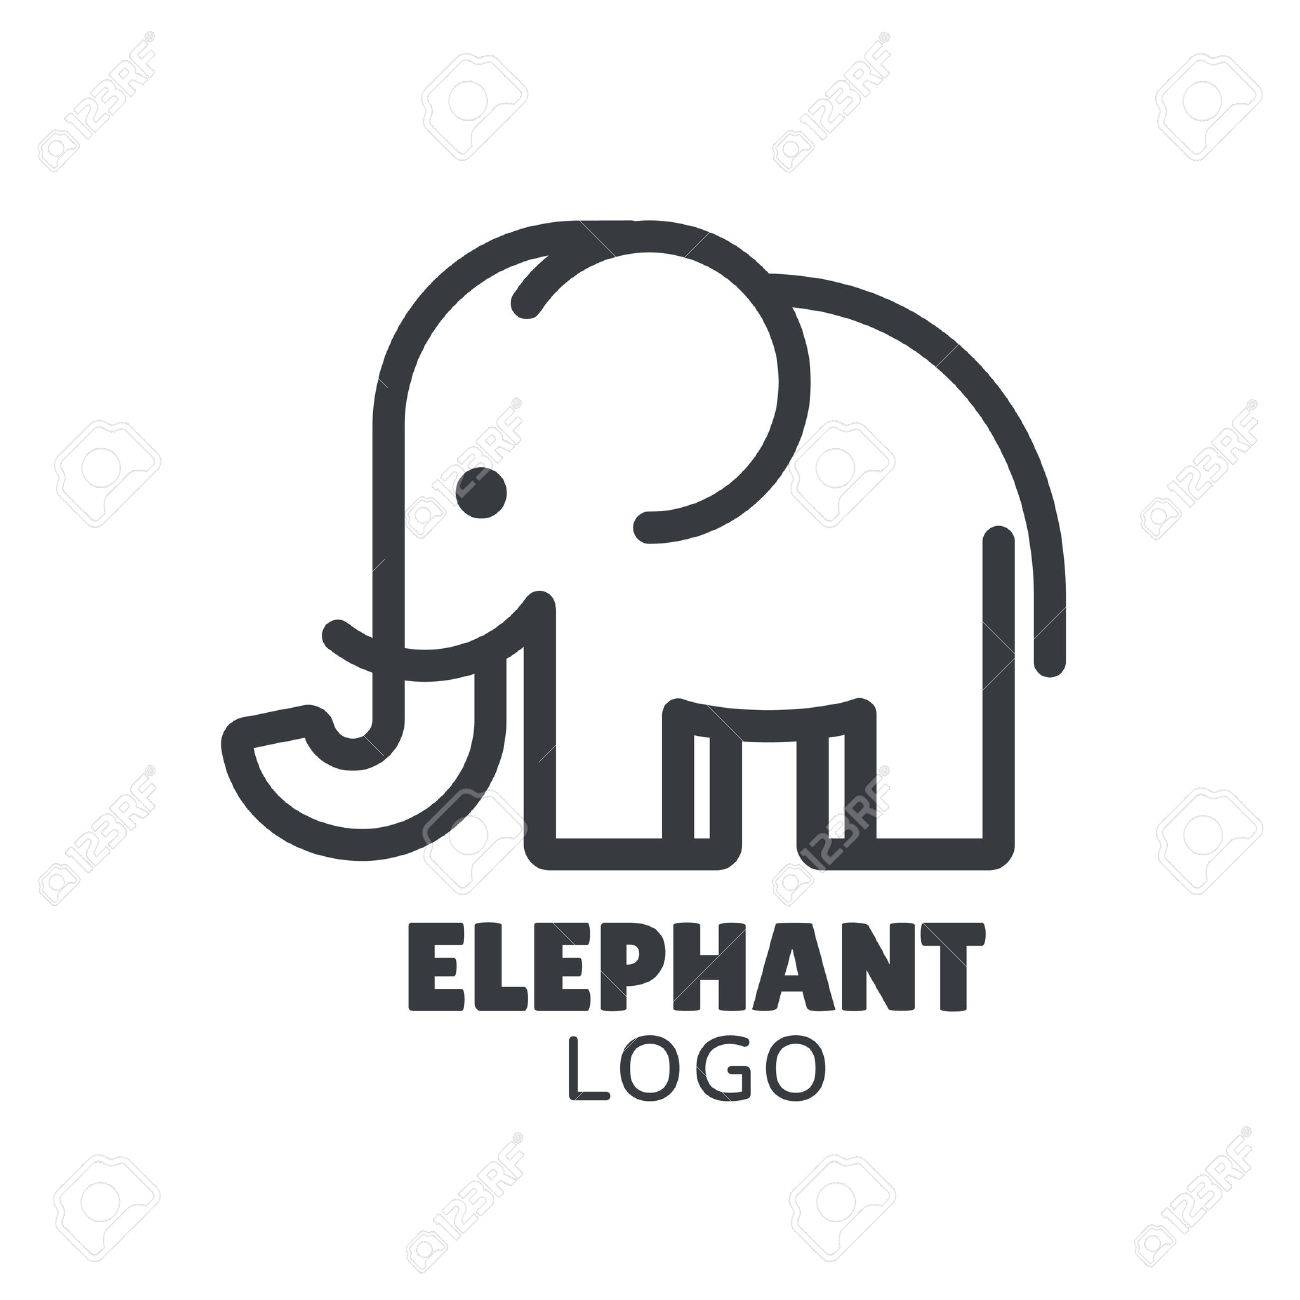 8c50a9620bd1 Simple and minimal elephant logo illustration. Modern vector line icon.  Stock Vector - 79987075